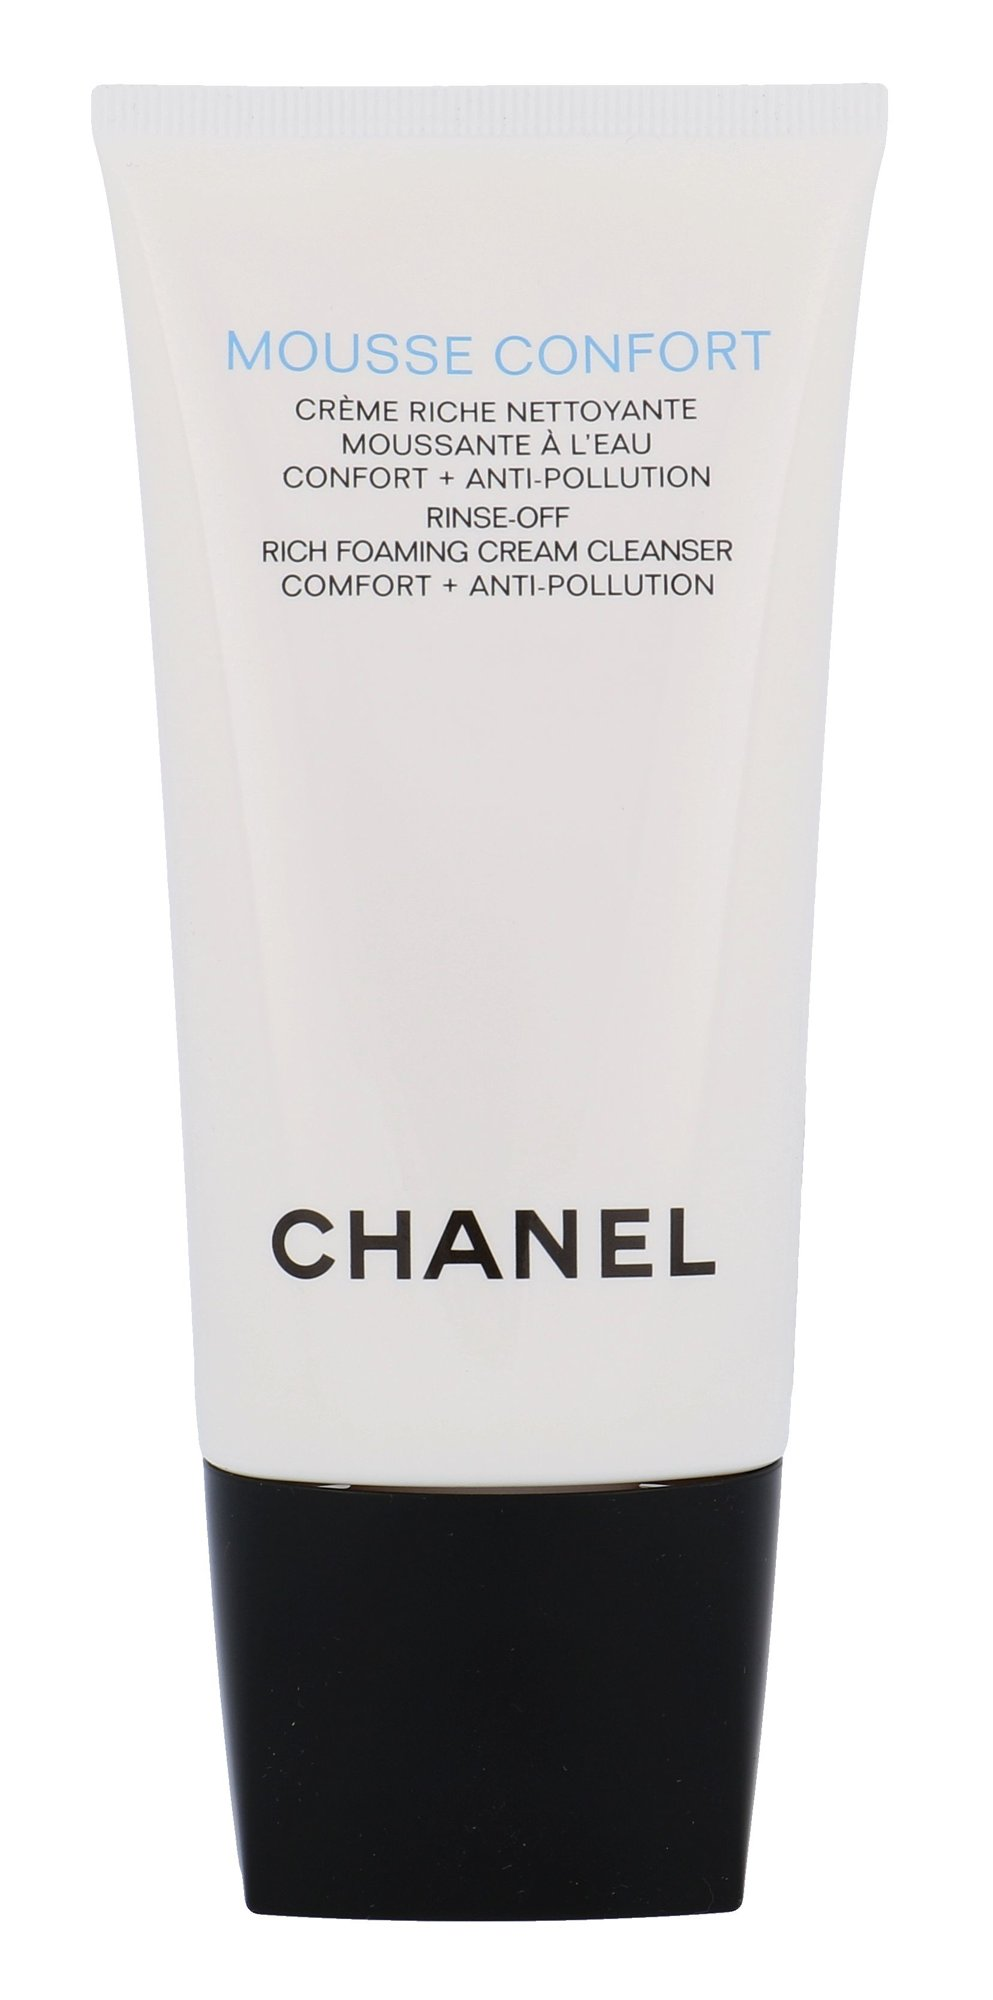 Chanel Mousse Confort Cosmetic 150ml